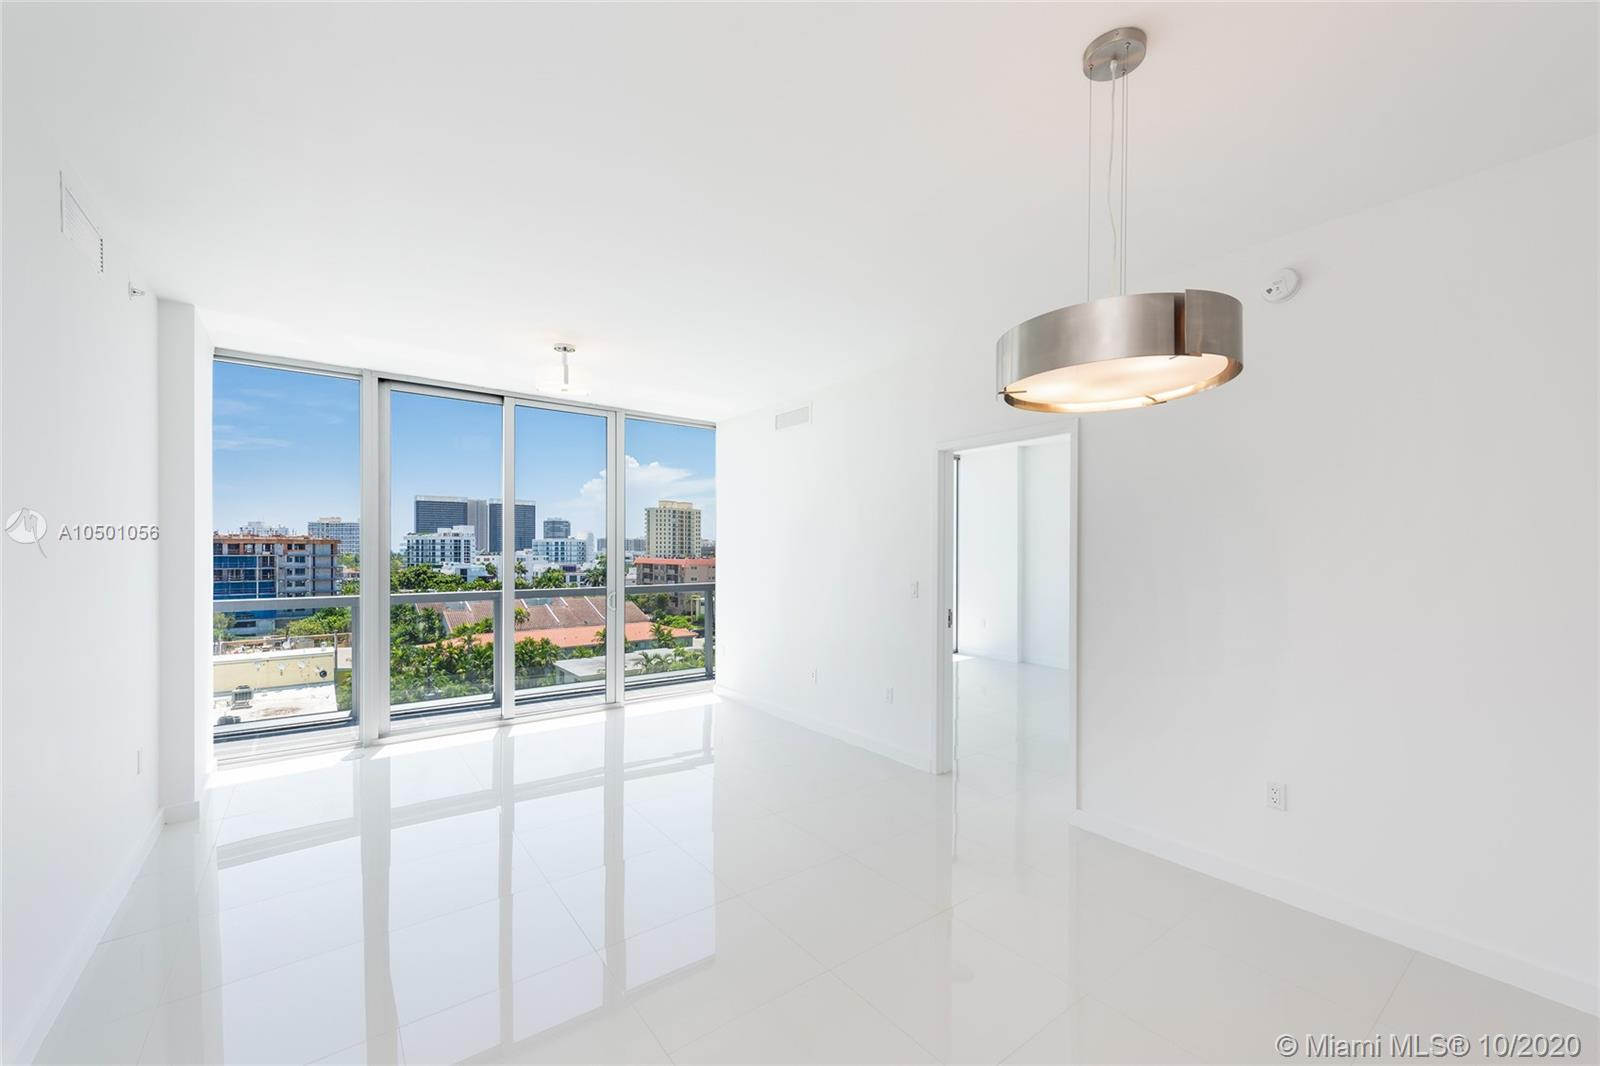 Motivated Seller!! Stunning new unit on the top floor of Kai condo in Bay Harbor. No one has ever lived in it. 2BRs plus den (can be easily converted in 3rd bedroom), 3 full baths. Largest 2BR in building, white porcelain floors throughout, 10 ft ceilings, floor to ceiling windows, kitchen w/Bosch appliances, Mia Cucina cabinetry and Quartz countertops. Expansive terrace runs the entire width of the unit. All hurricane impact windows and doors, 2 parking spots, 1 storage bin. This boutique luxury waterfront building offers its residents 24hr security, roof top pool with Jacuzzi, BBQ and more. Walking distance to the beach and just steps from the famous Bal Harbour Shops & fine dining. Dock slips are available.